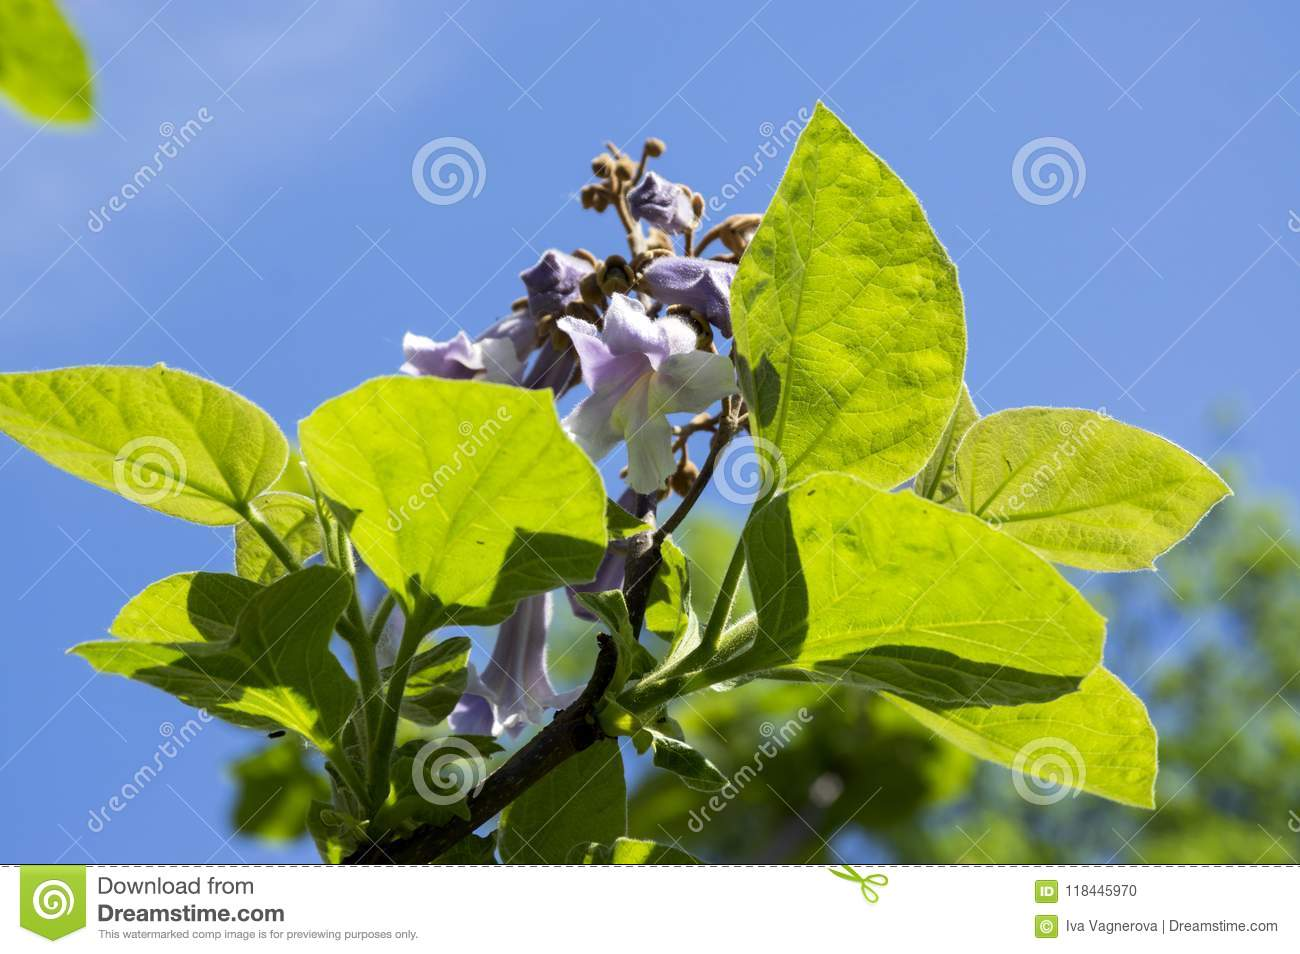 Paulownia Tomentosa Ornamental Flowering Tree Branches With Green